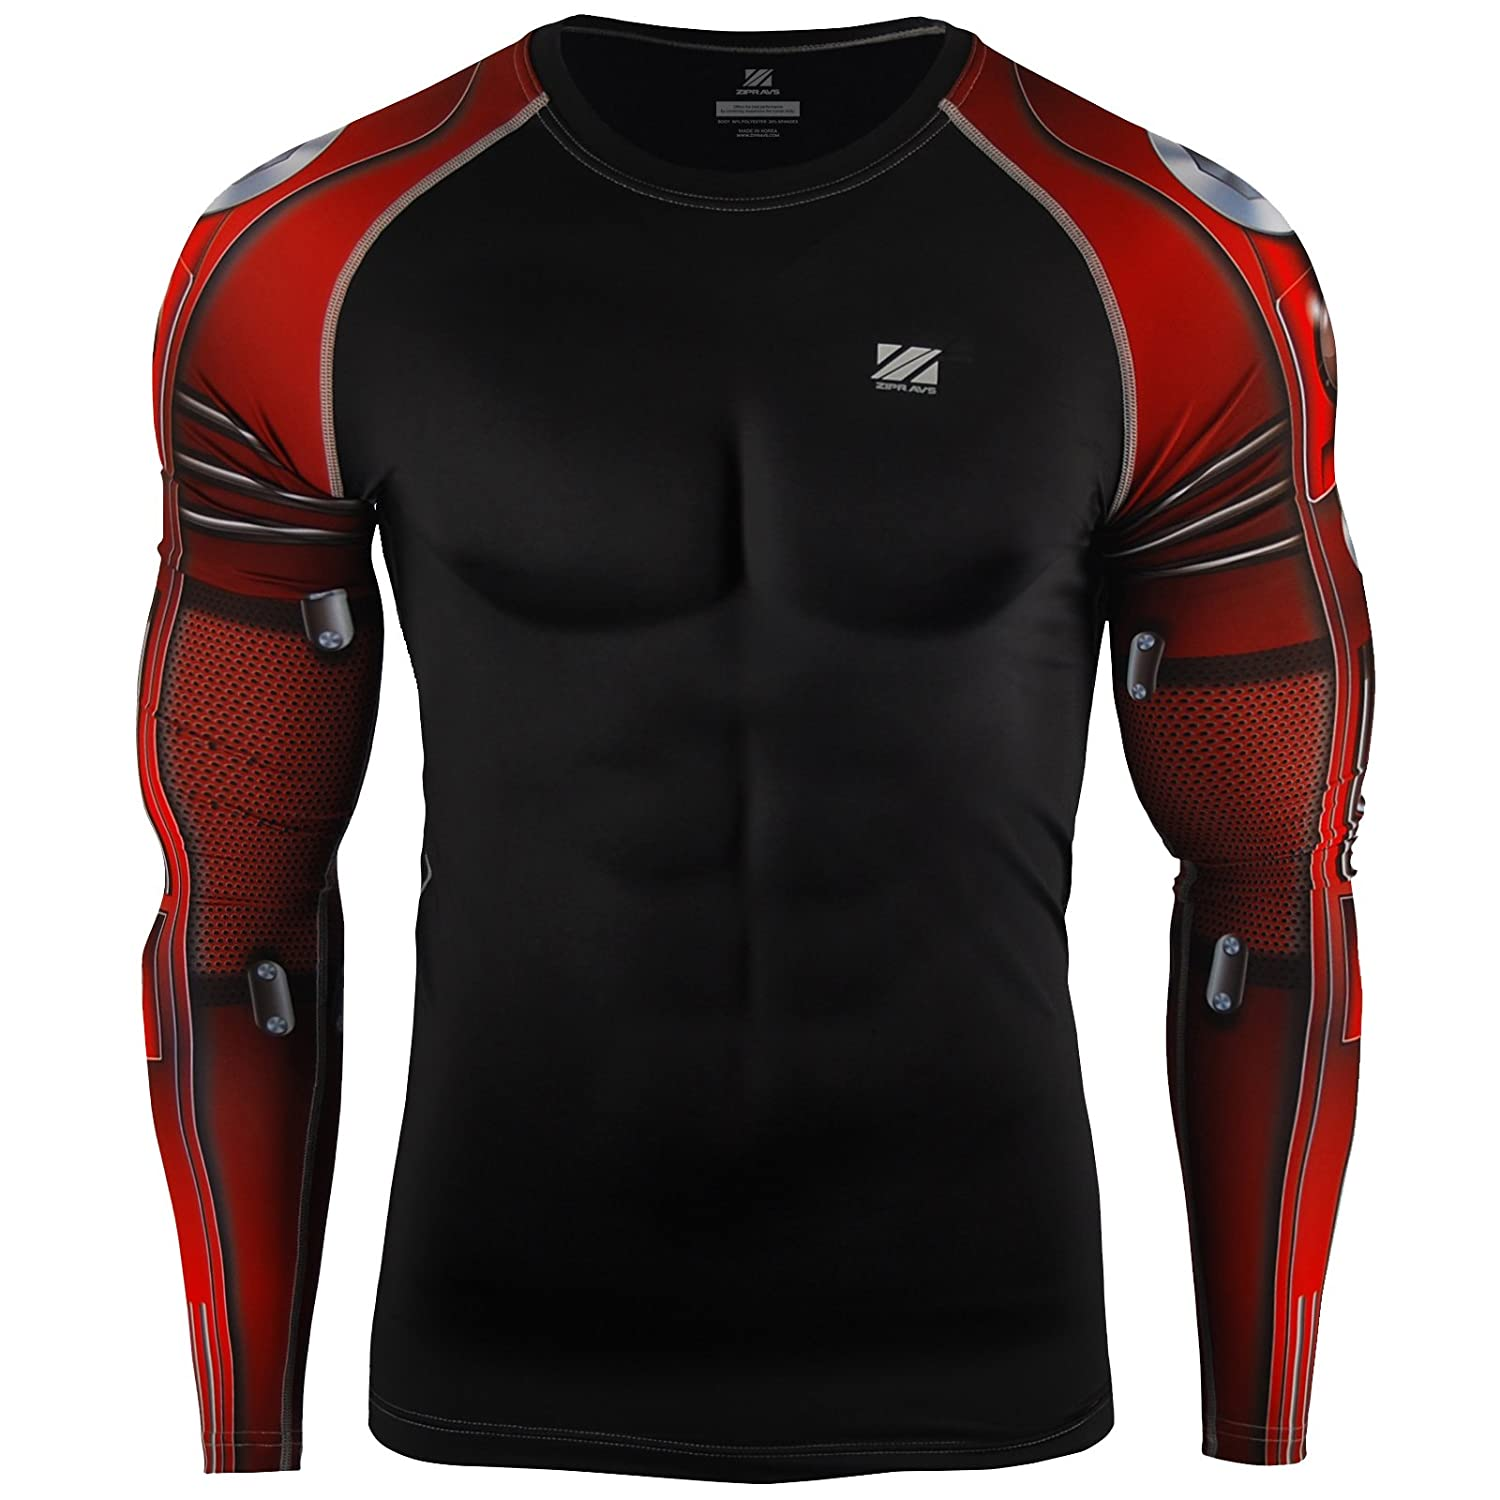 Zipravs Under Layer MMA Running Compression Shirt Long Sleeve